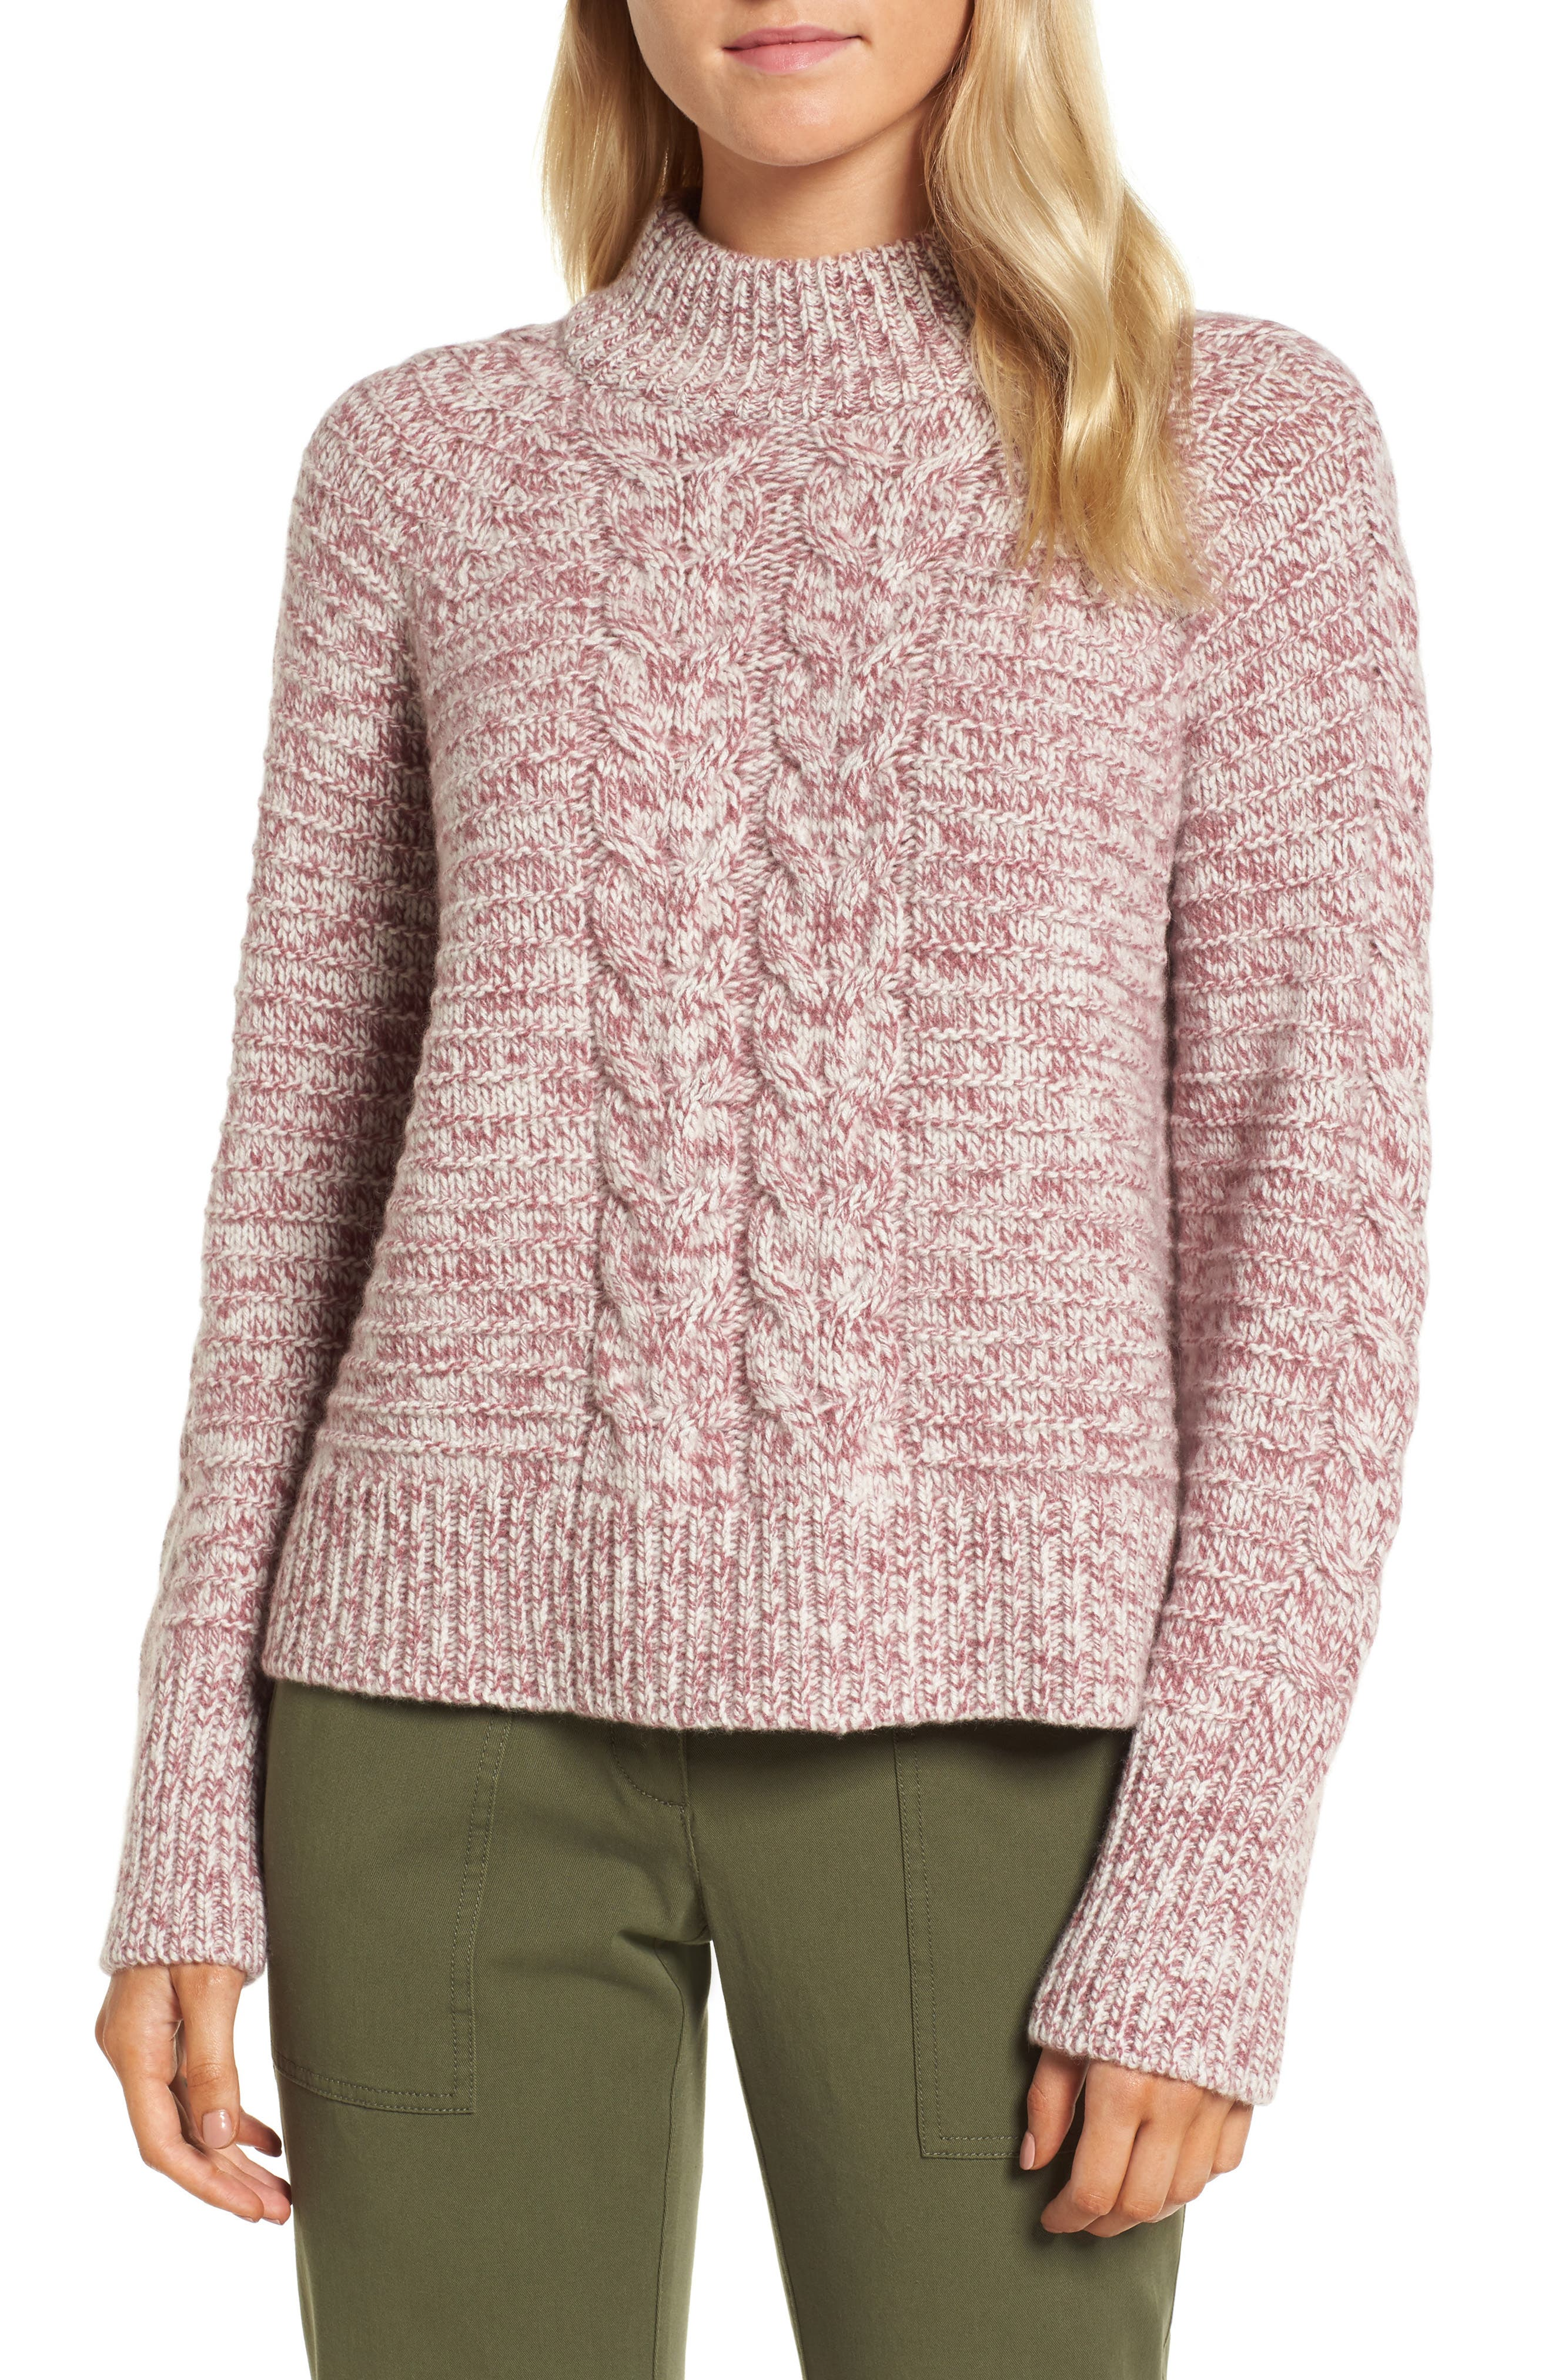 Main Image - Nordstrom Signature Cashmere Cable Knit Sweater